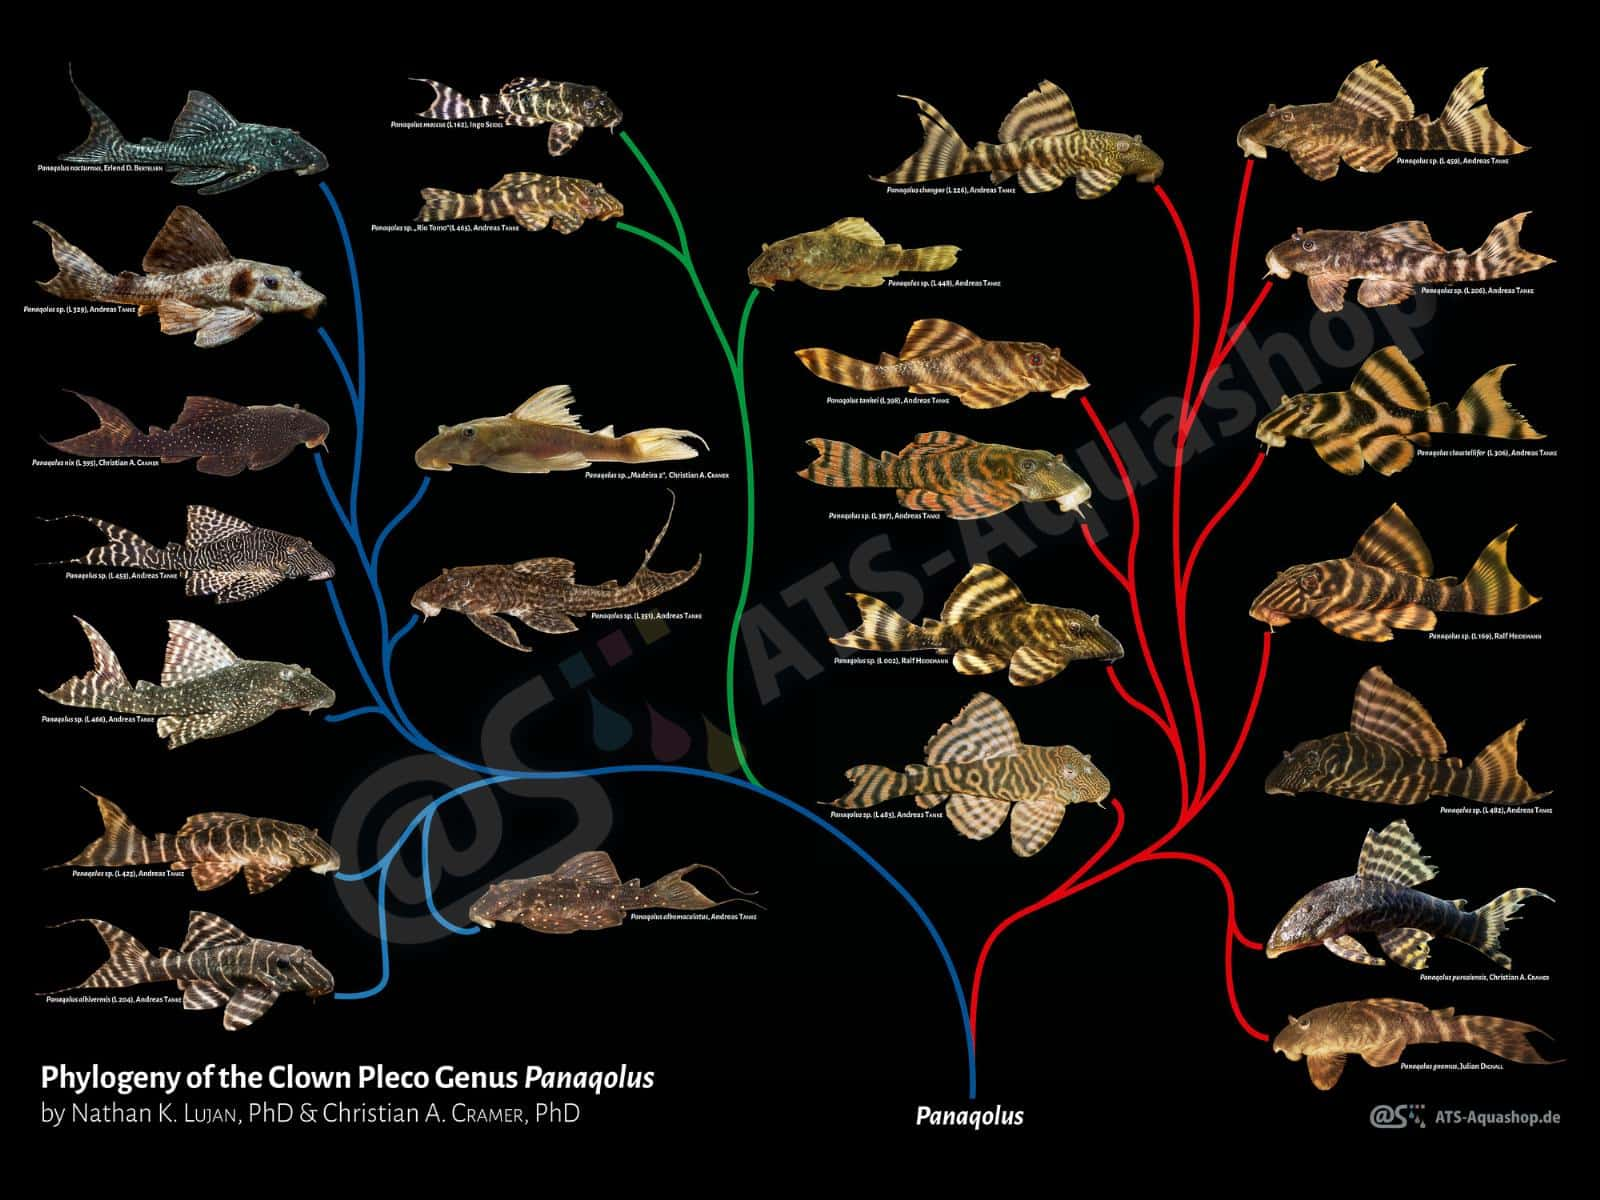 phylogeny of the clown pleco genus panaqolus 2